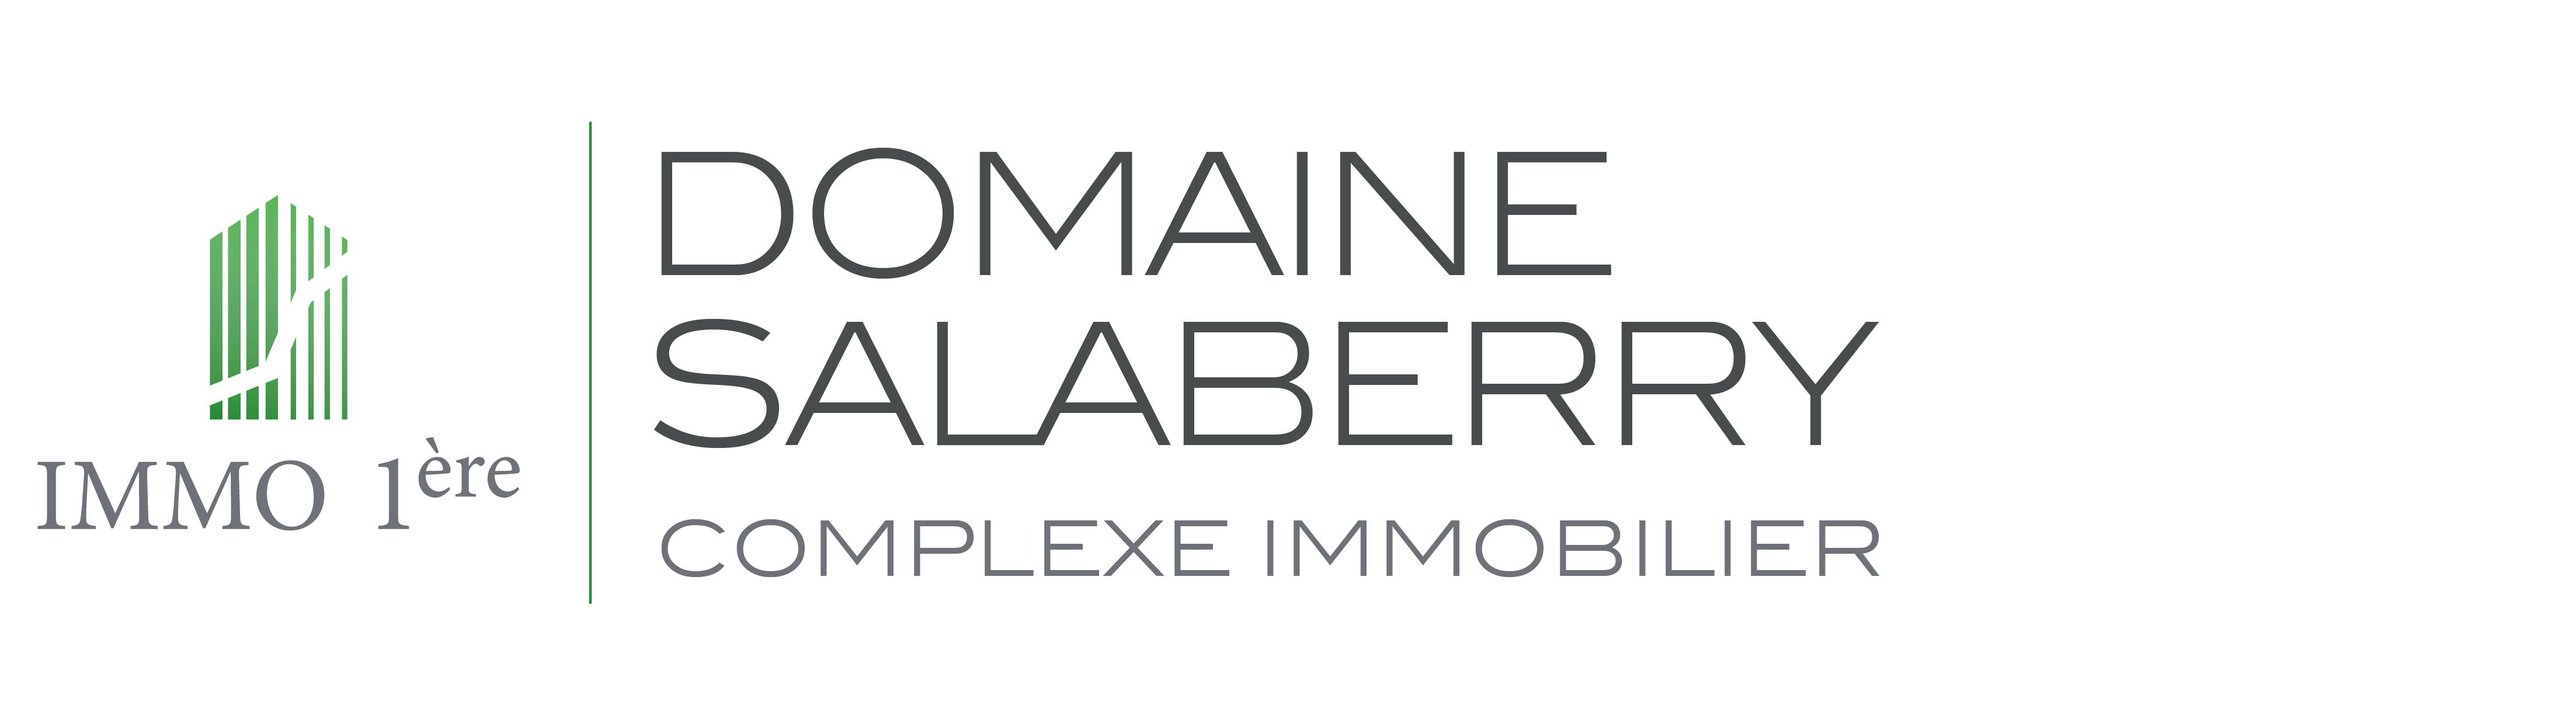 Domaine Salaberry